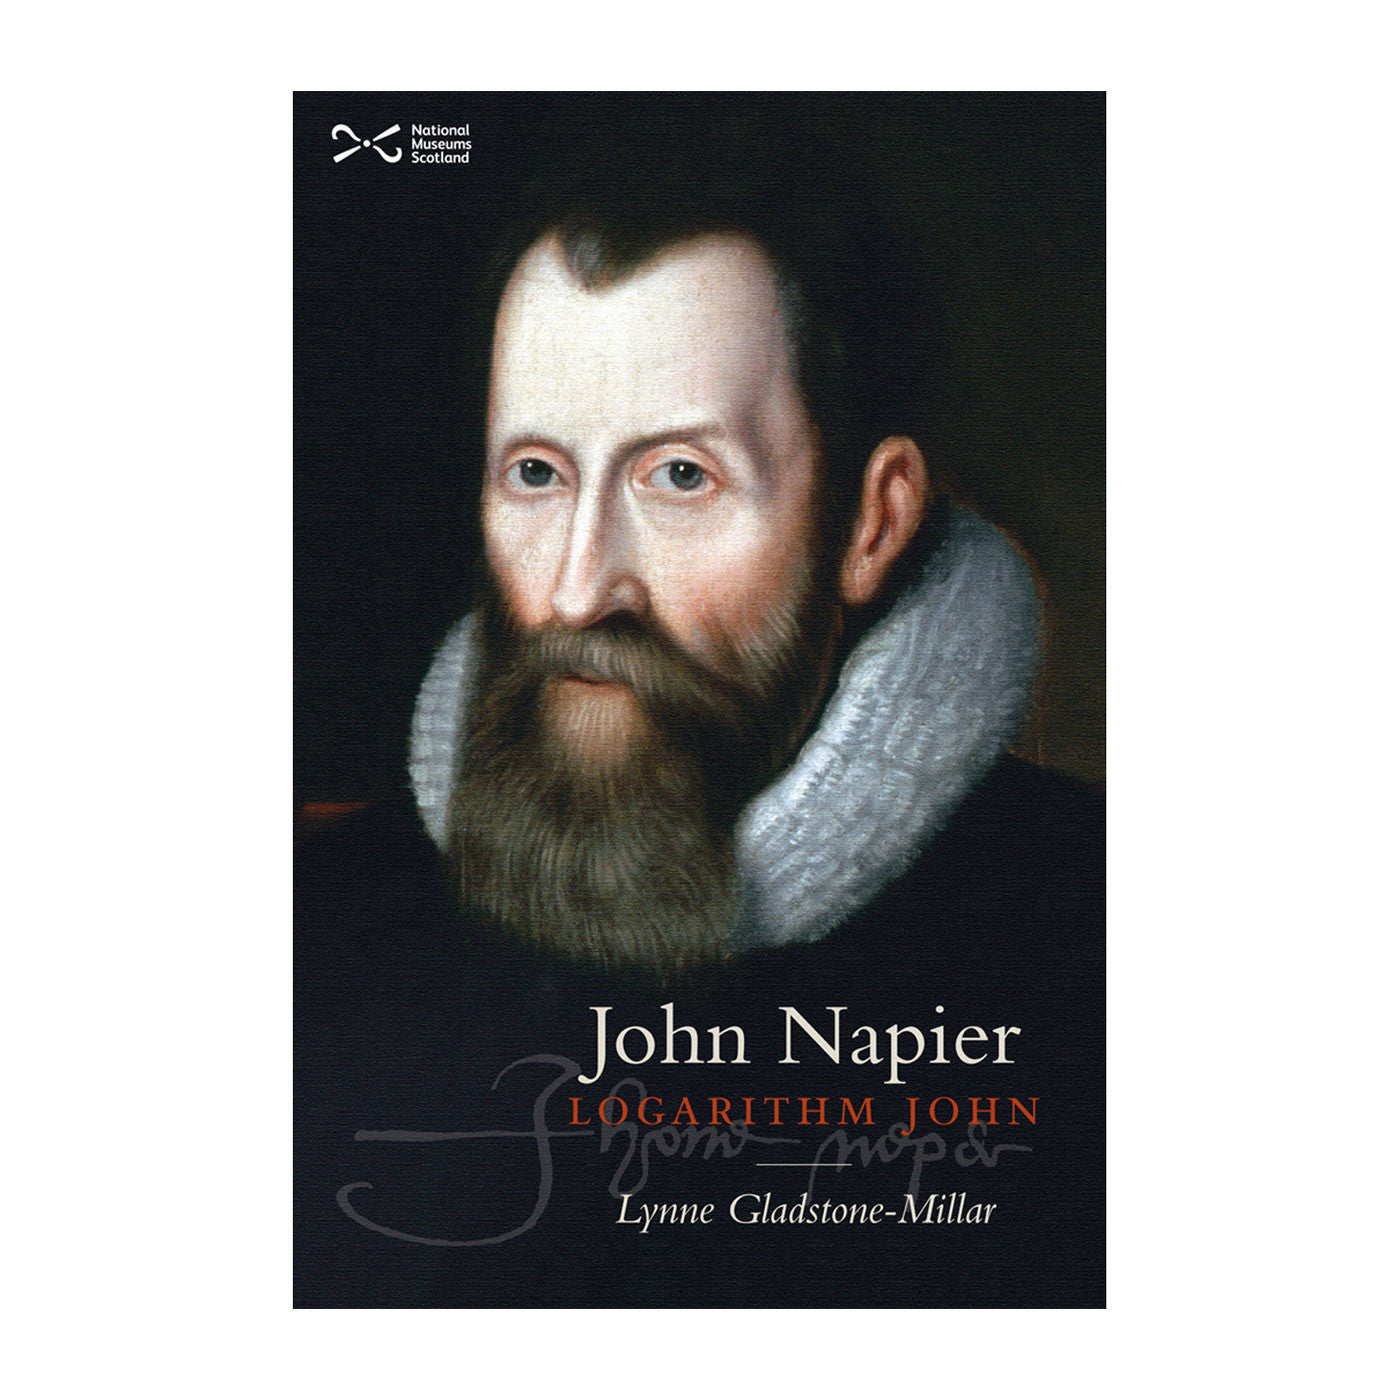 a biography of john napier a scottish mathematician Mathematical science professor enrique gonzález-velasco recently completed a book on the life and works of 16th-17th century scottish mathematician john napier the life and works of john napier, co-authored with a descendant of napier and an authority on napier's life, prof gonzález-velasco has made all of napier's mathematical works available in english for the first time.